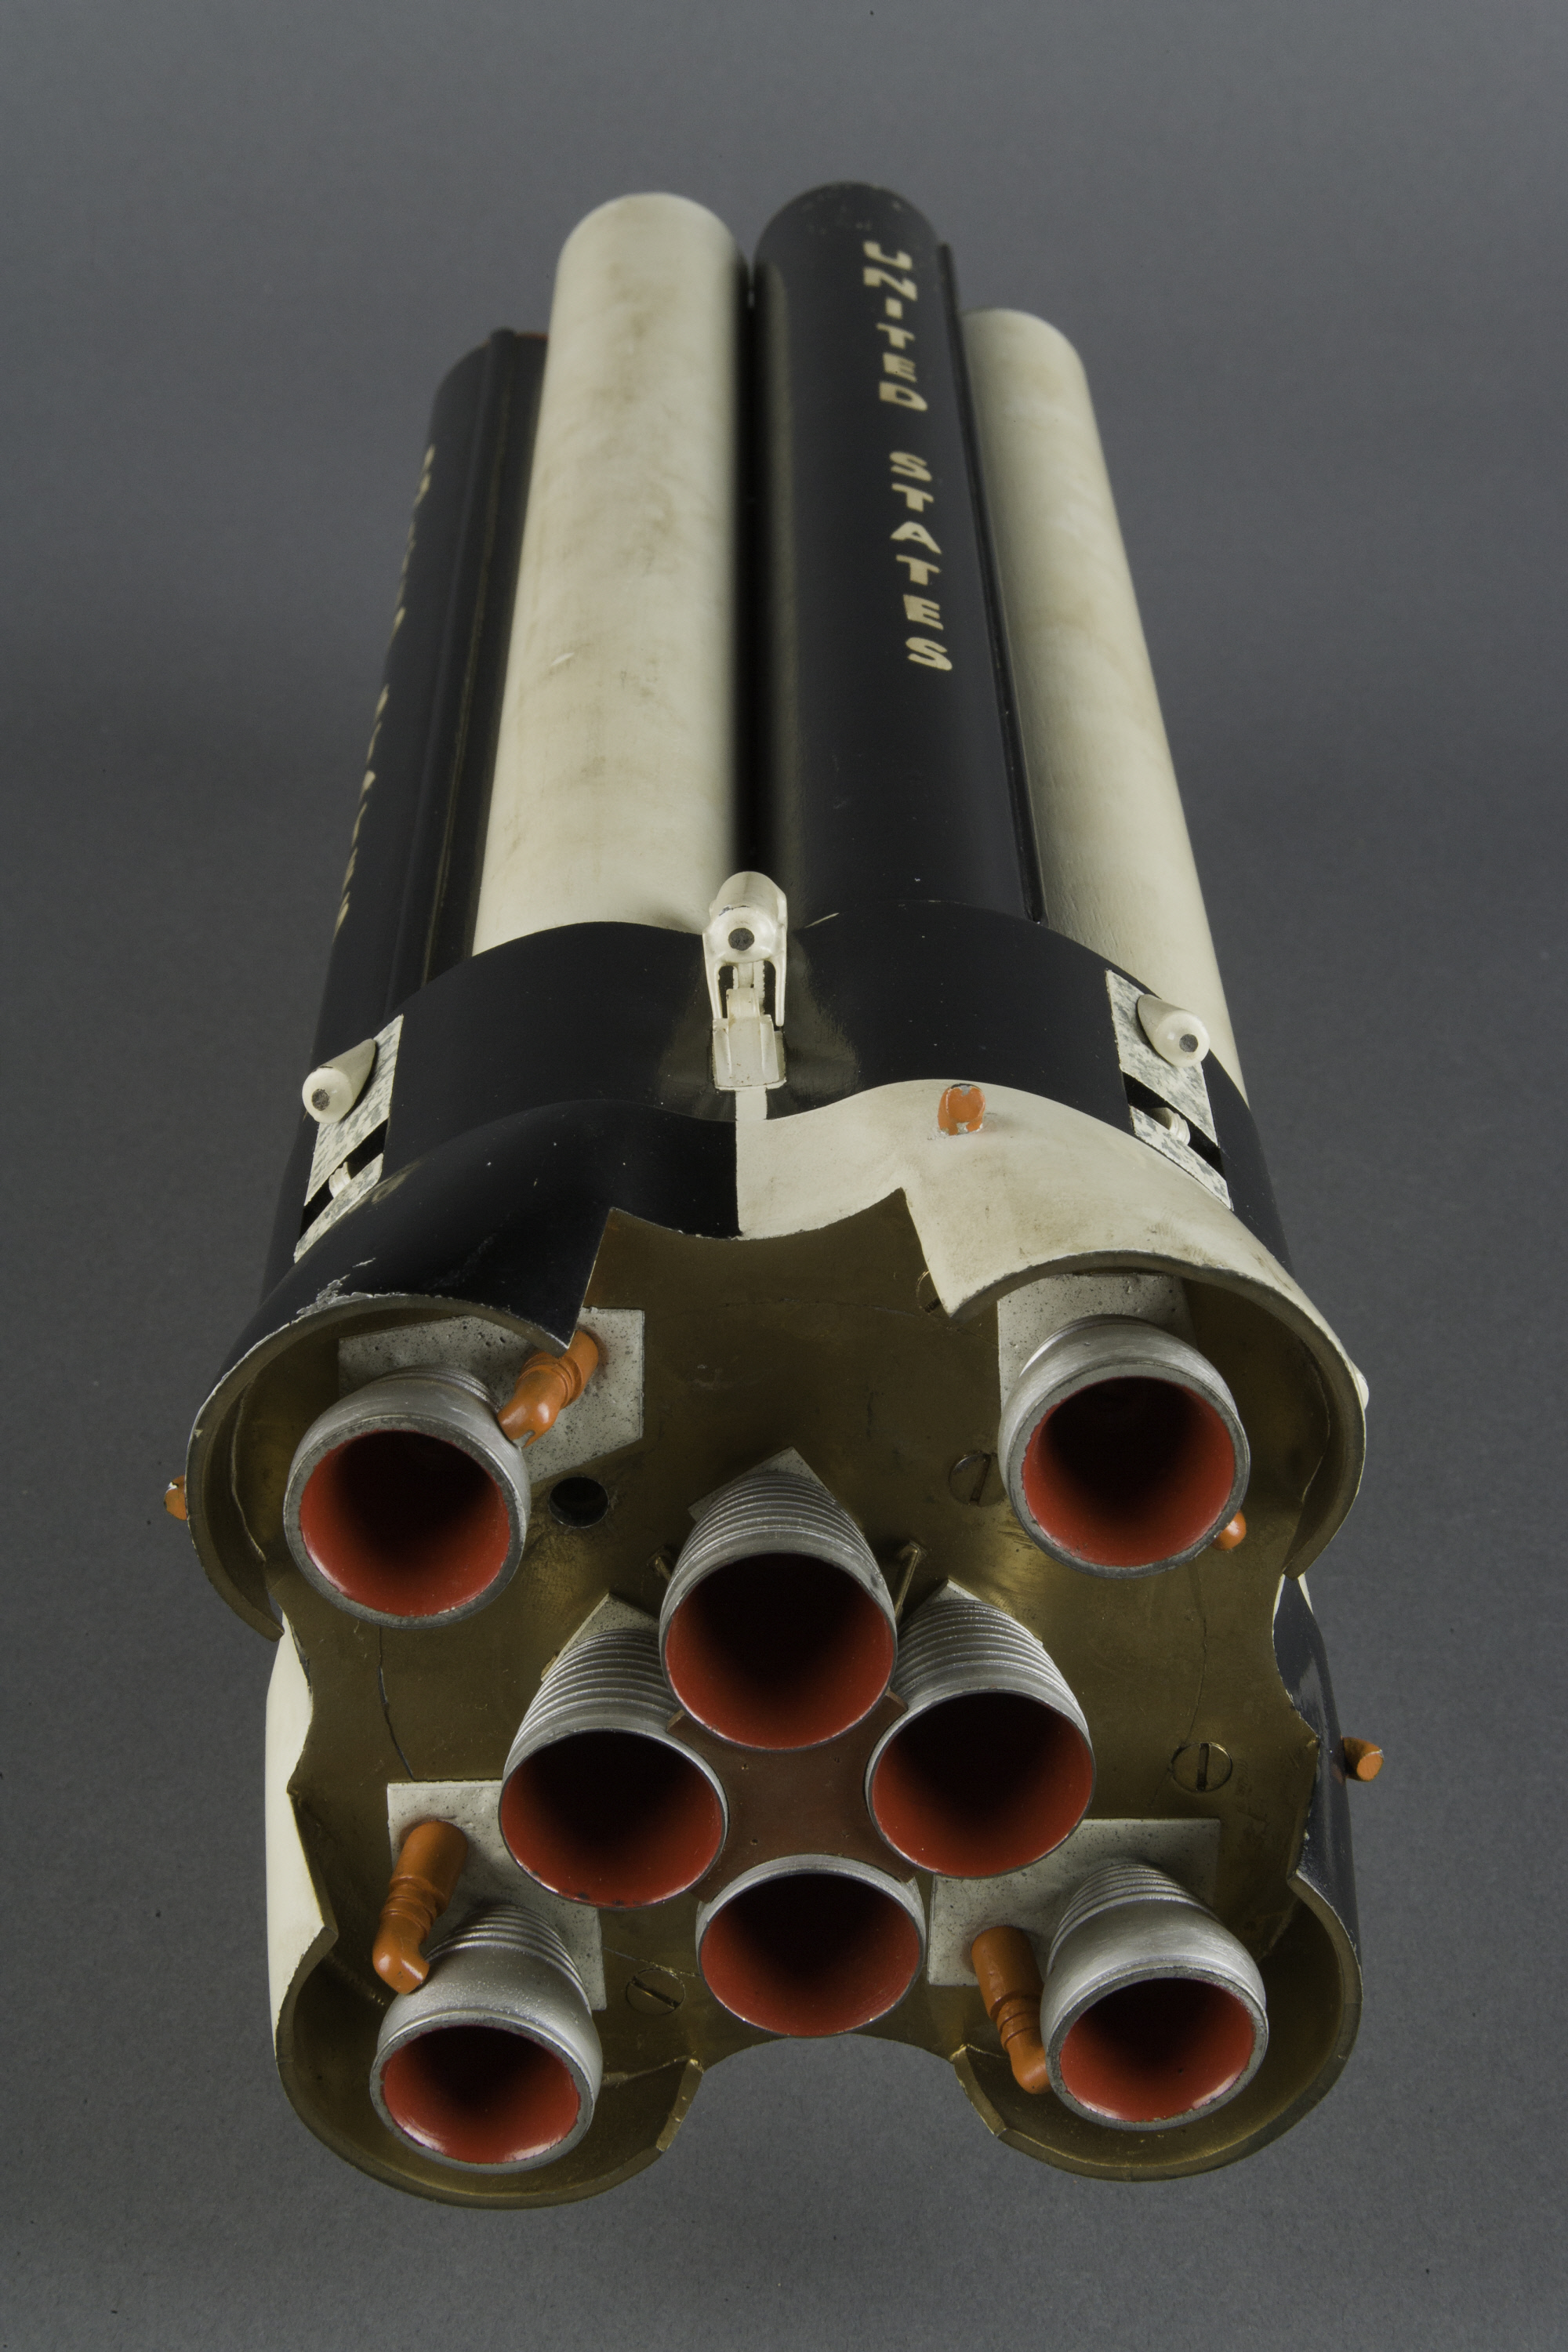 Image of : Model, Rocket, Saturn, Early Version, 1:96